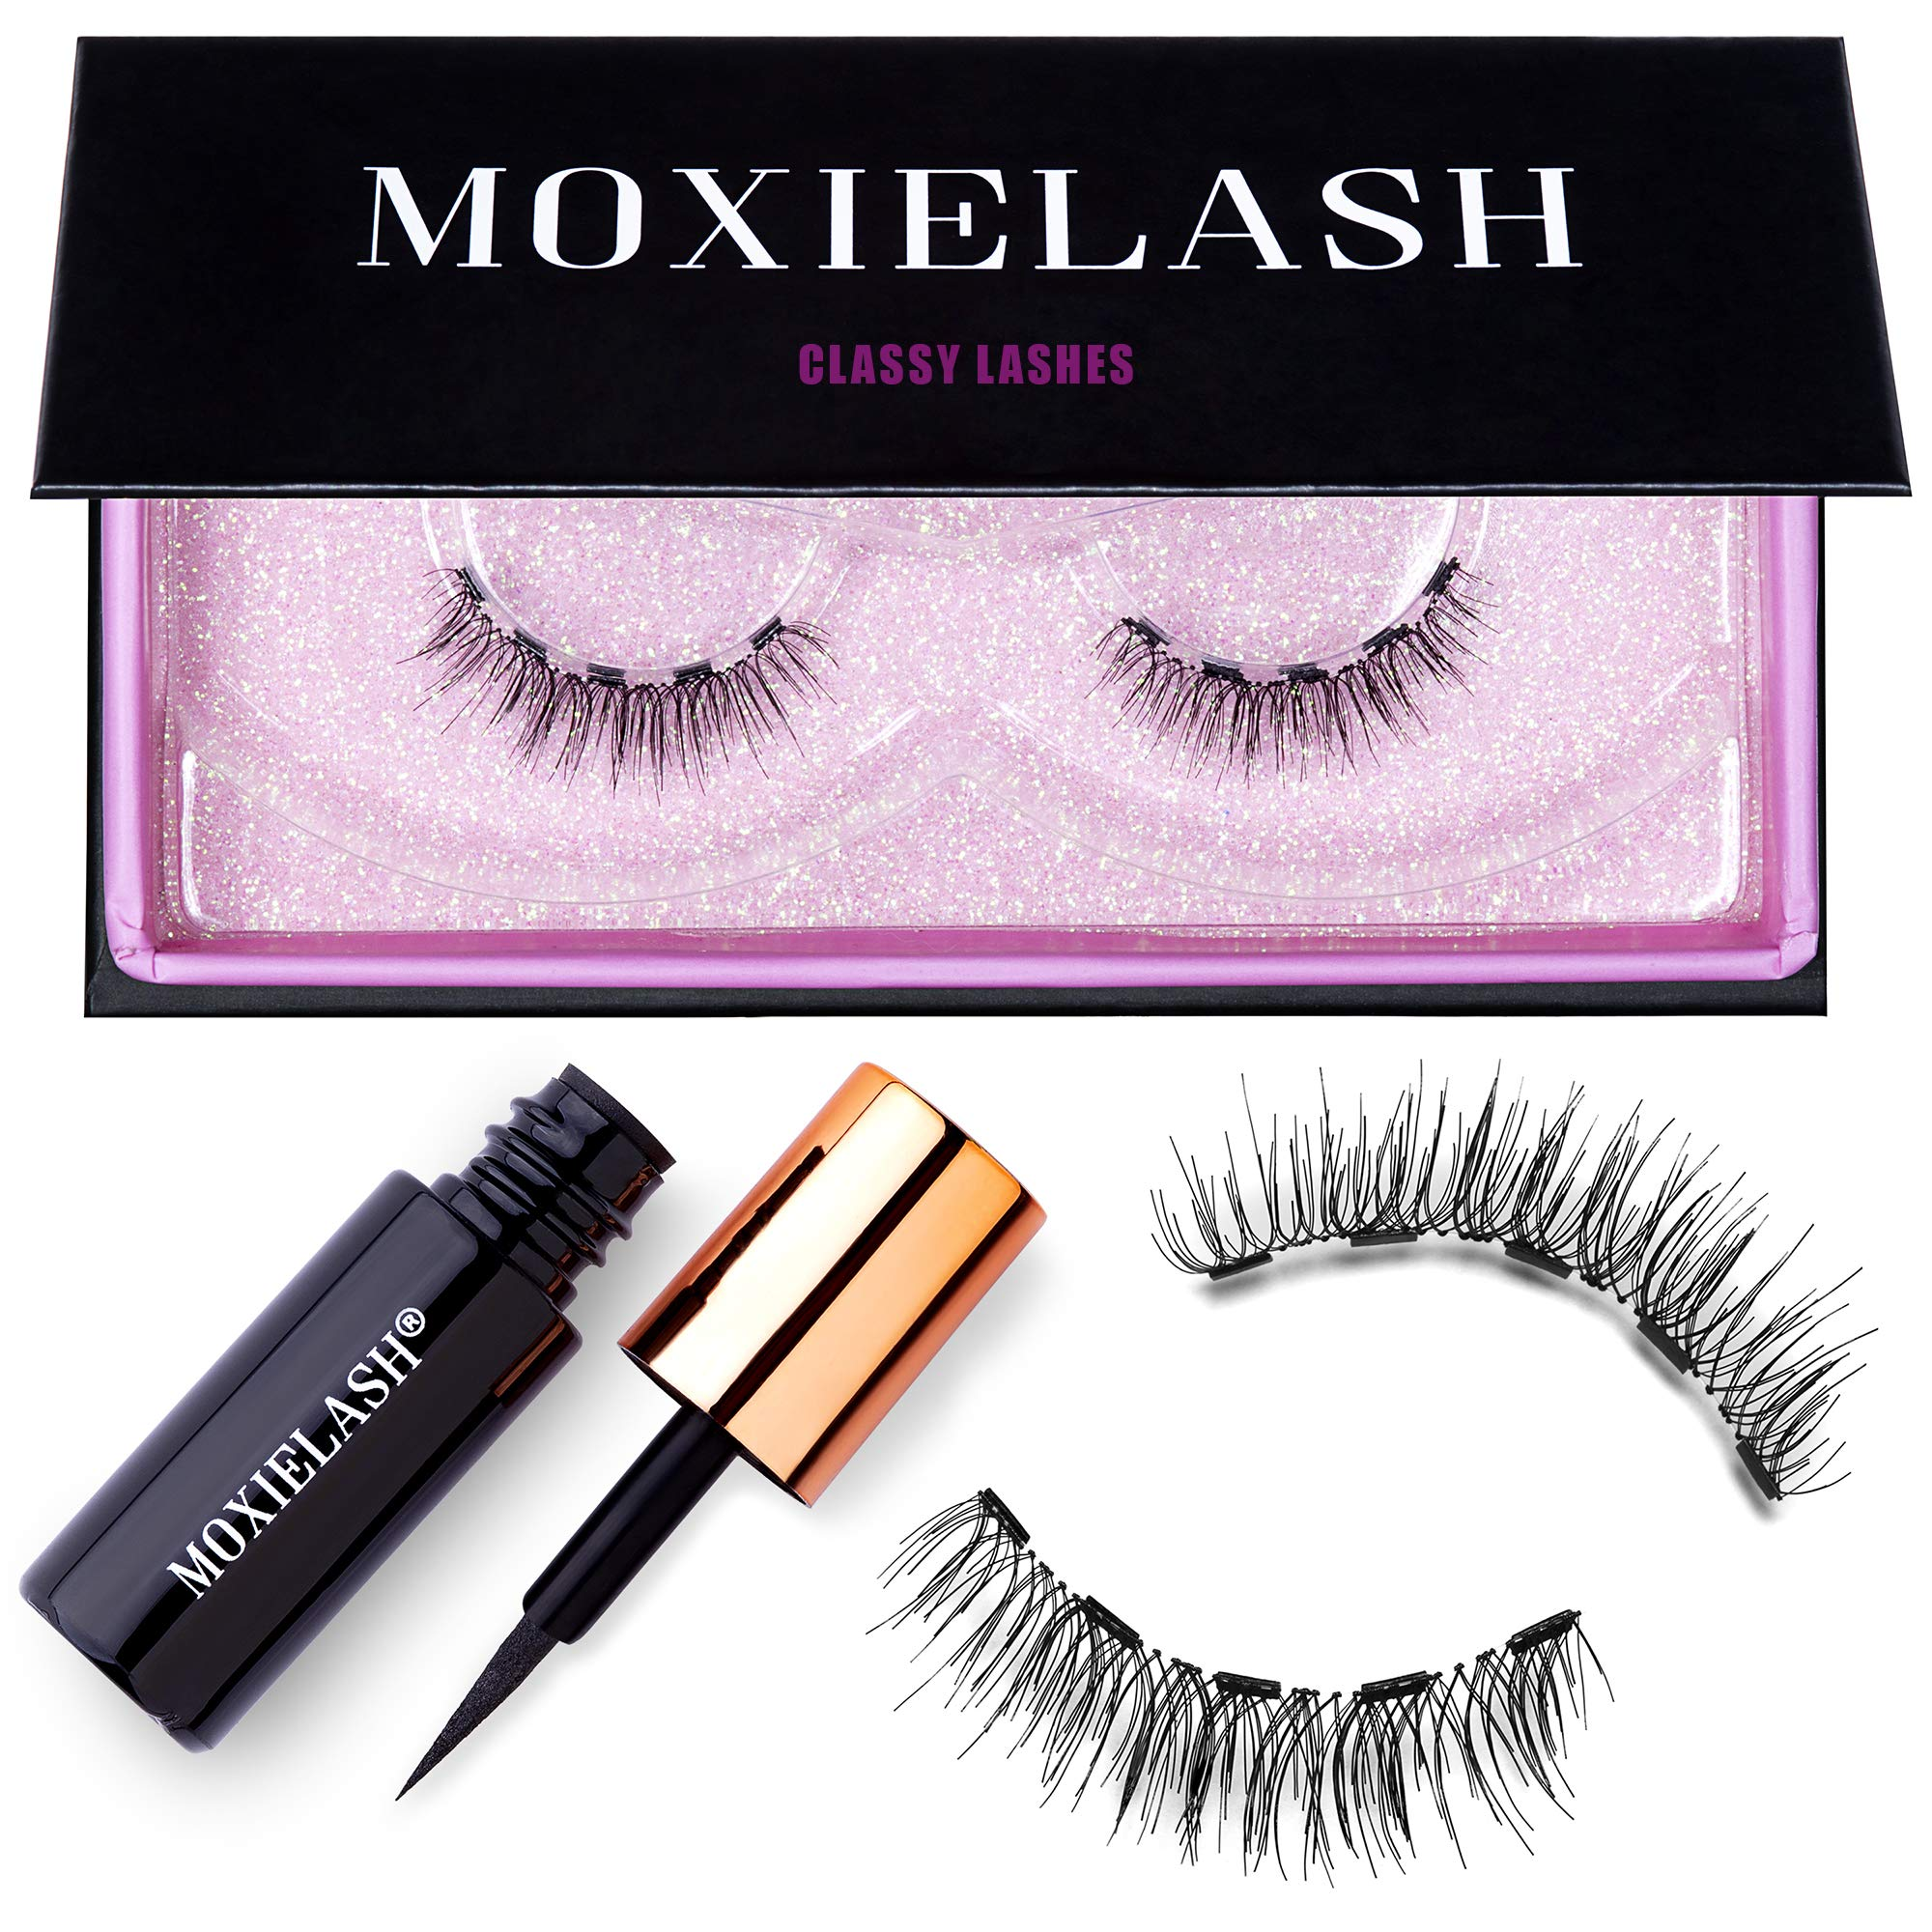 MoxieLash Classy Kit - Magnetic Liquid Eyeliner for Magnetic Eyelashes - No Glue & Mess Free - Fast & Easy Application - Set of Classy Lashes & Instruction Card Included by MoxieLash